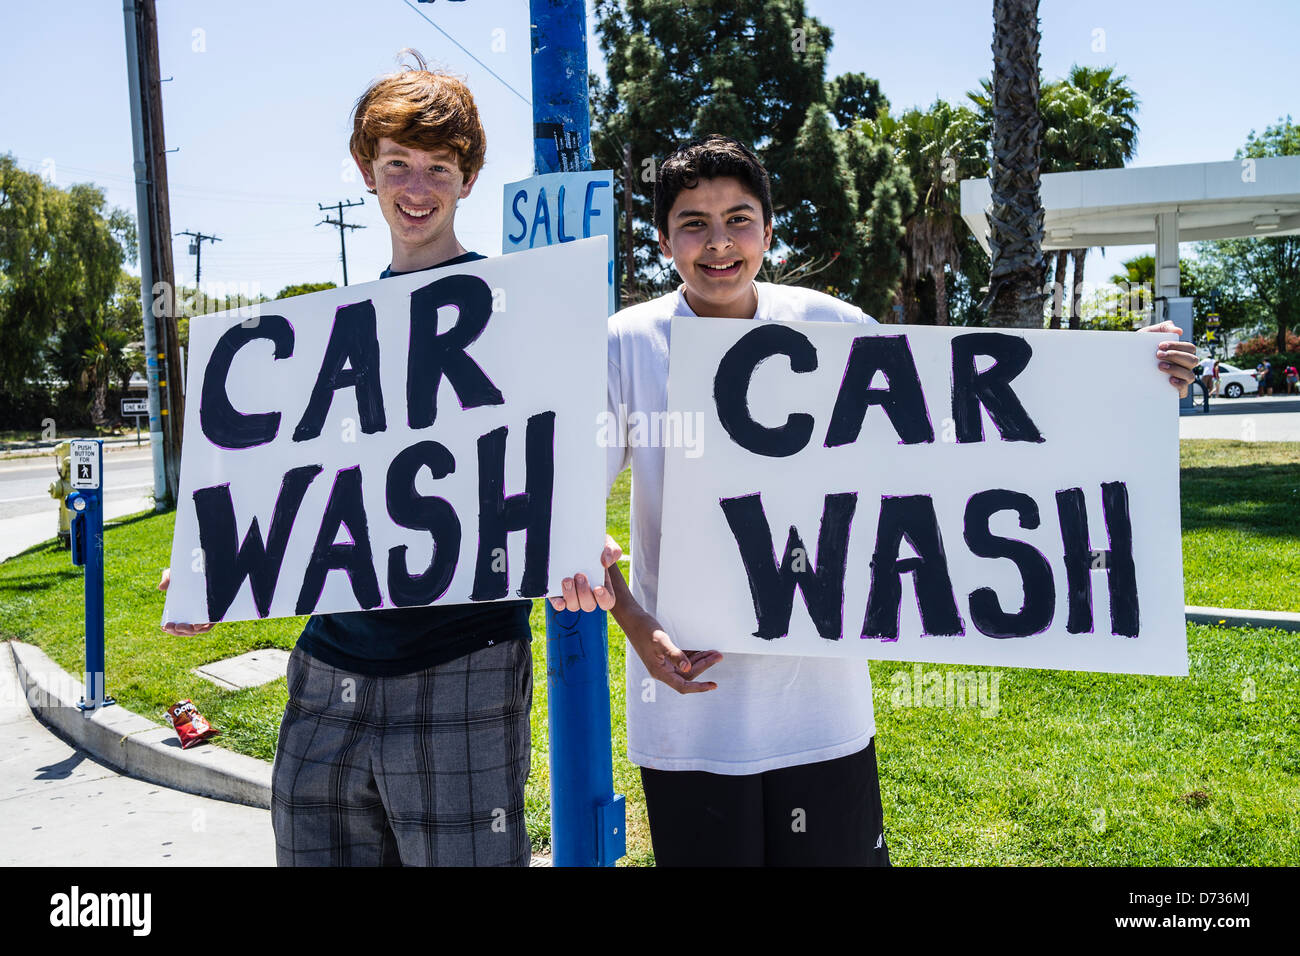 Two high school students, trying to get business, hold up signs that read 'Car Wash' at a busy intersection. - Stock Image